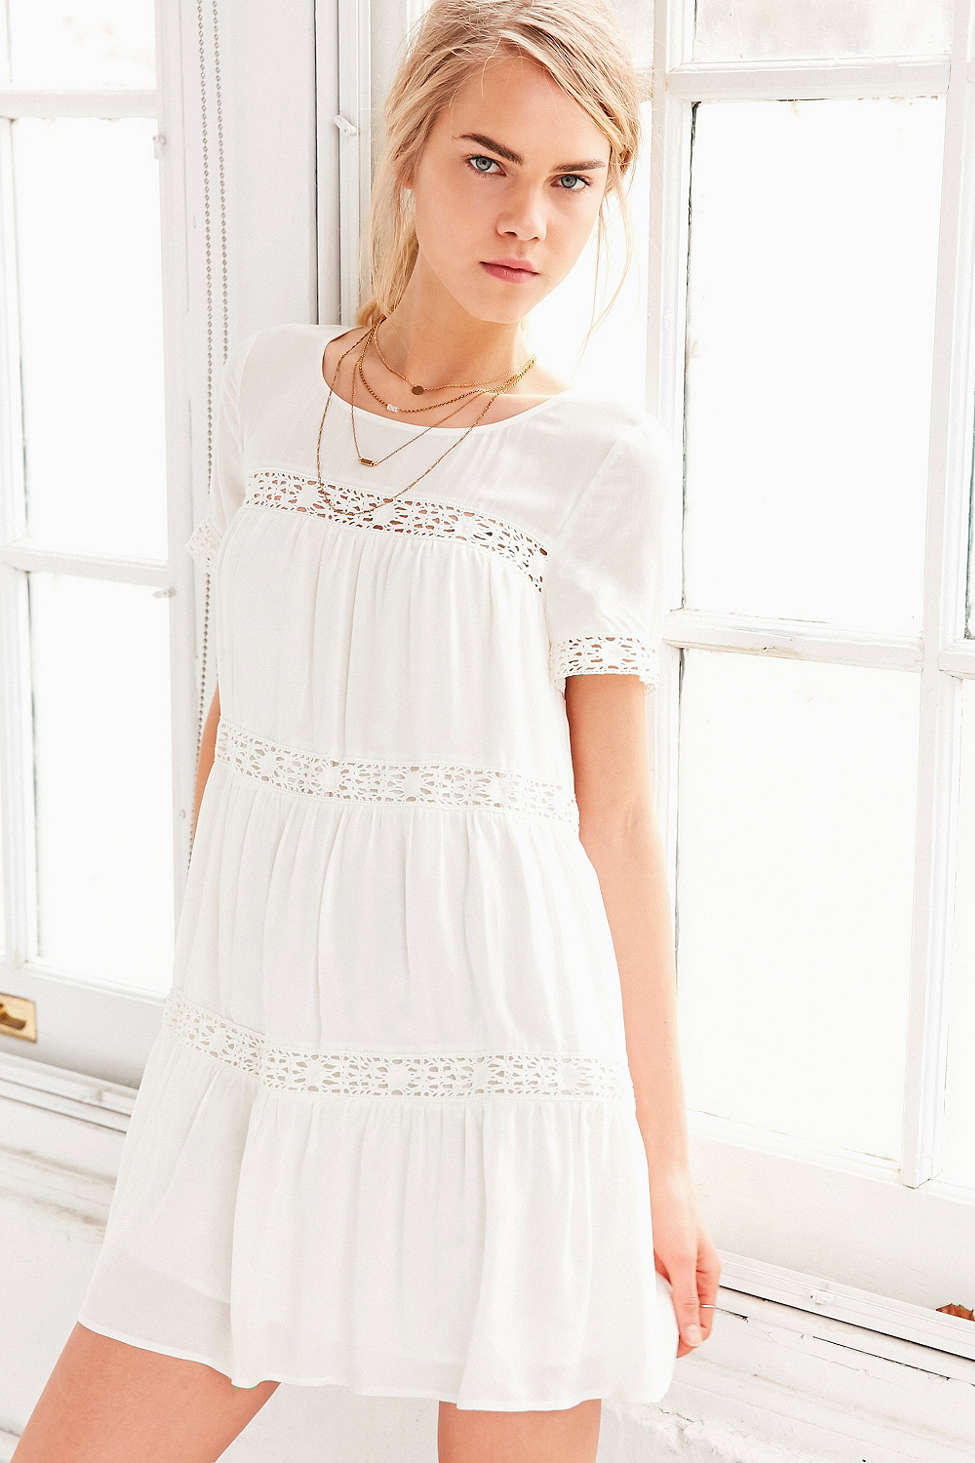 10 Perfect White Vacation Dresses - Alice & UO Eleonora Crochet Inset Dress